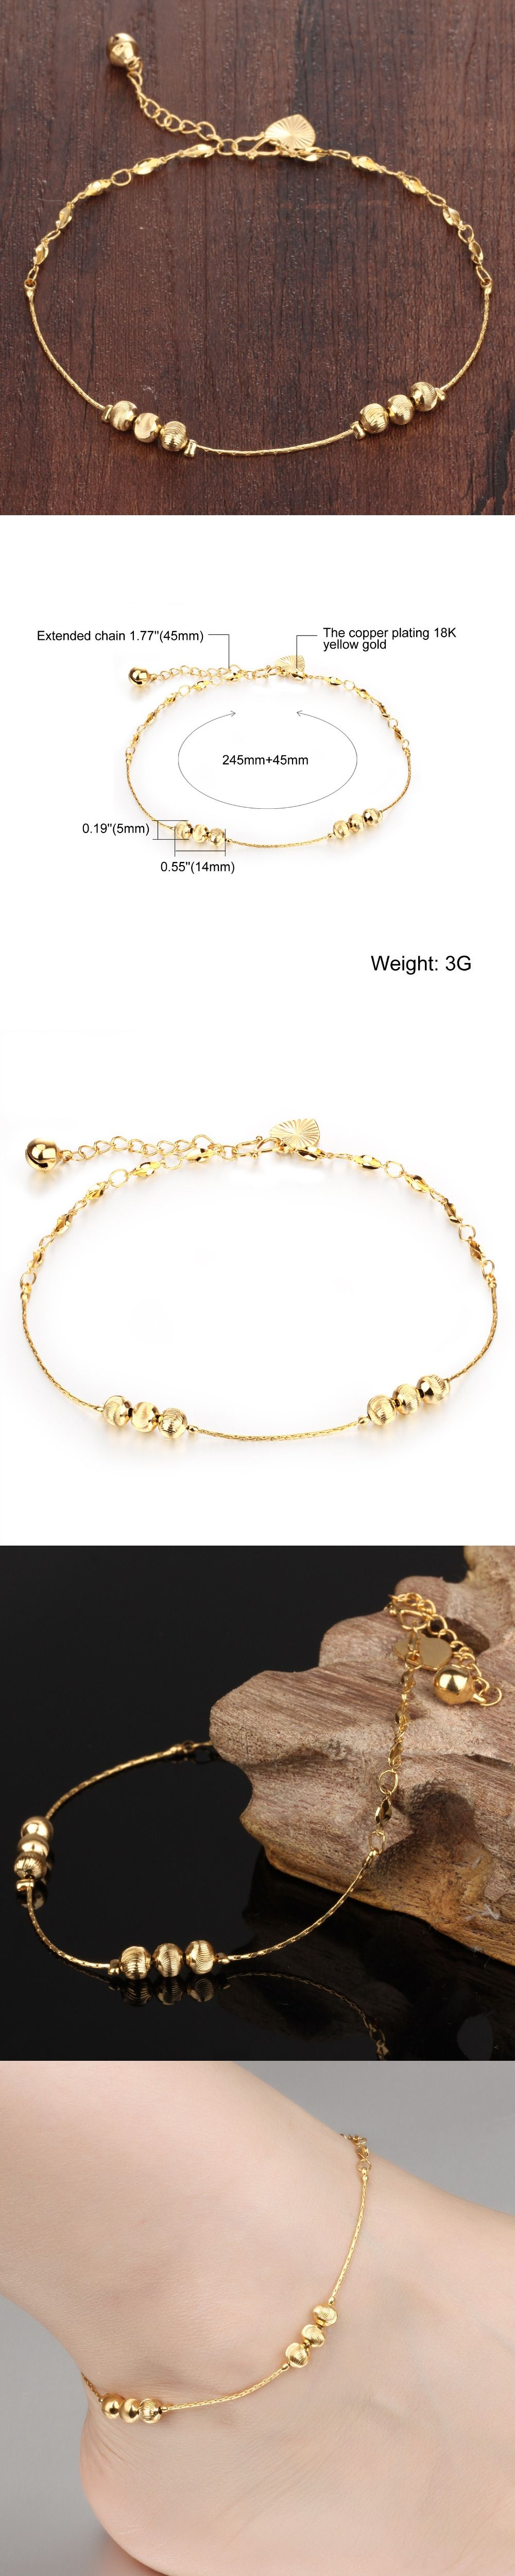 even matter embellishment it anklets fond fact womens of gossip young not order life are the gold daily satisfy bracelet to as baby in anklet women jewelry girls wearing a just enjoy available market